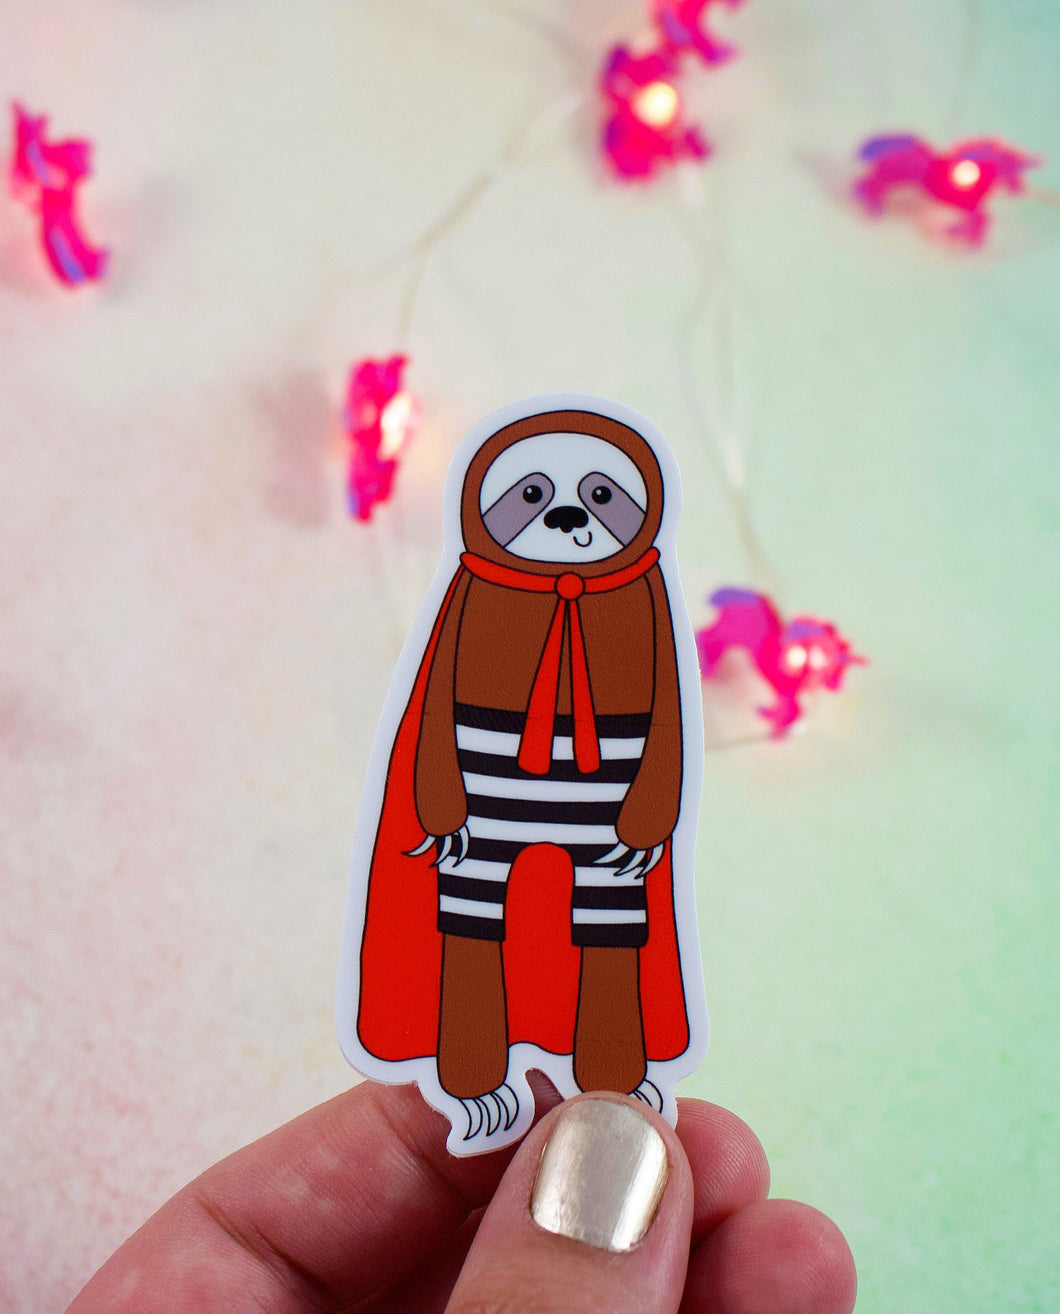 Superhero Sloth Vinyl Sticker: Water and Weather Proof!